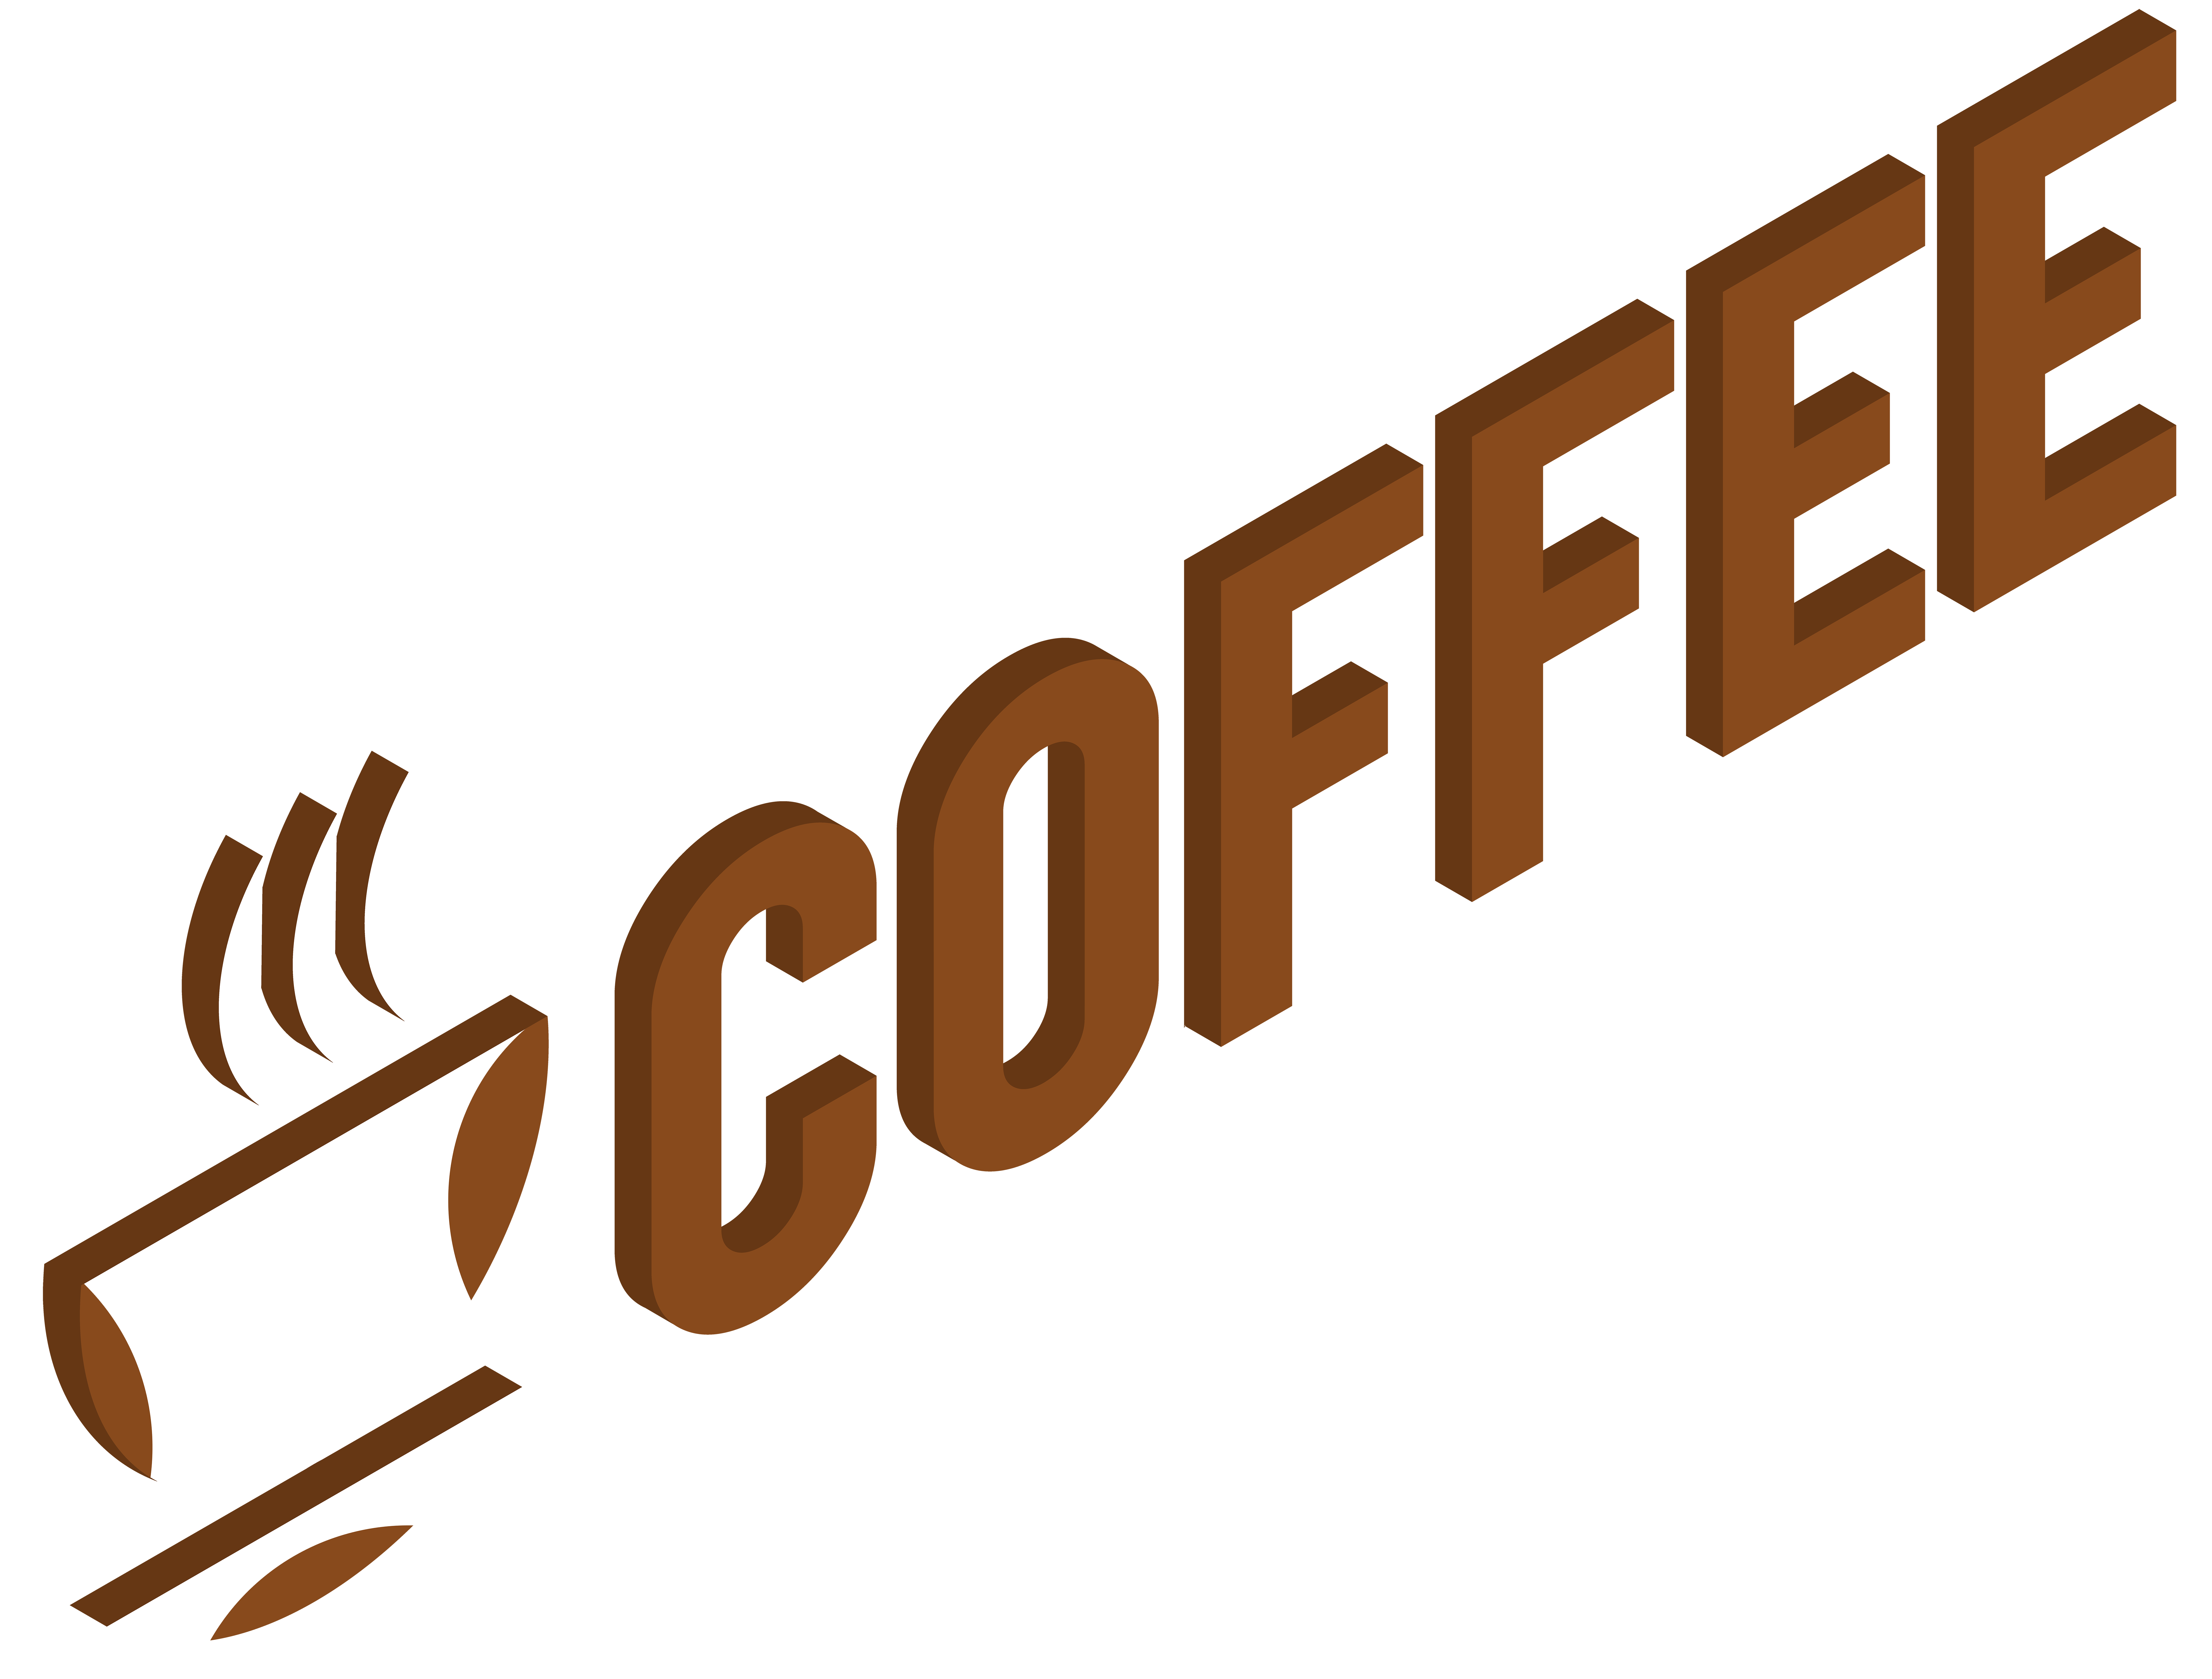 Coffee logo png. Transparent clip art image